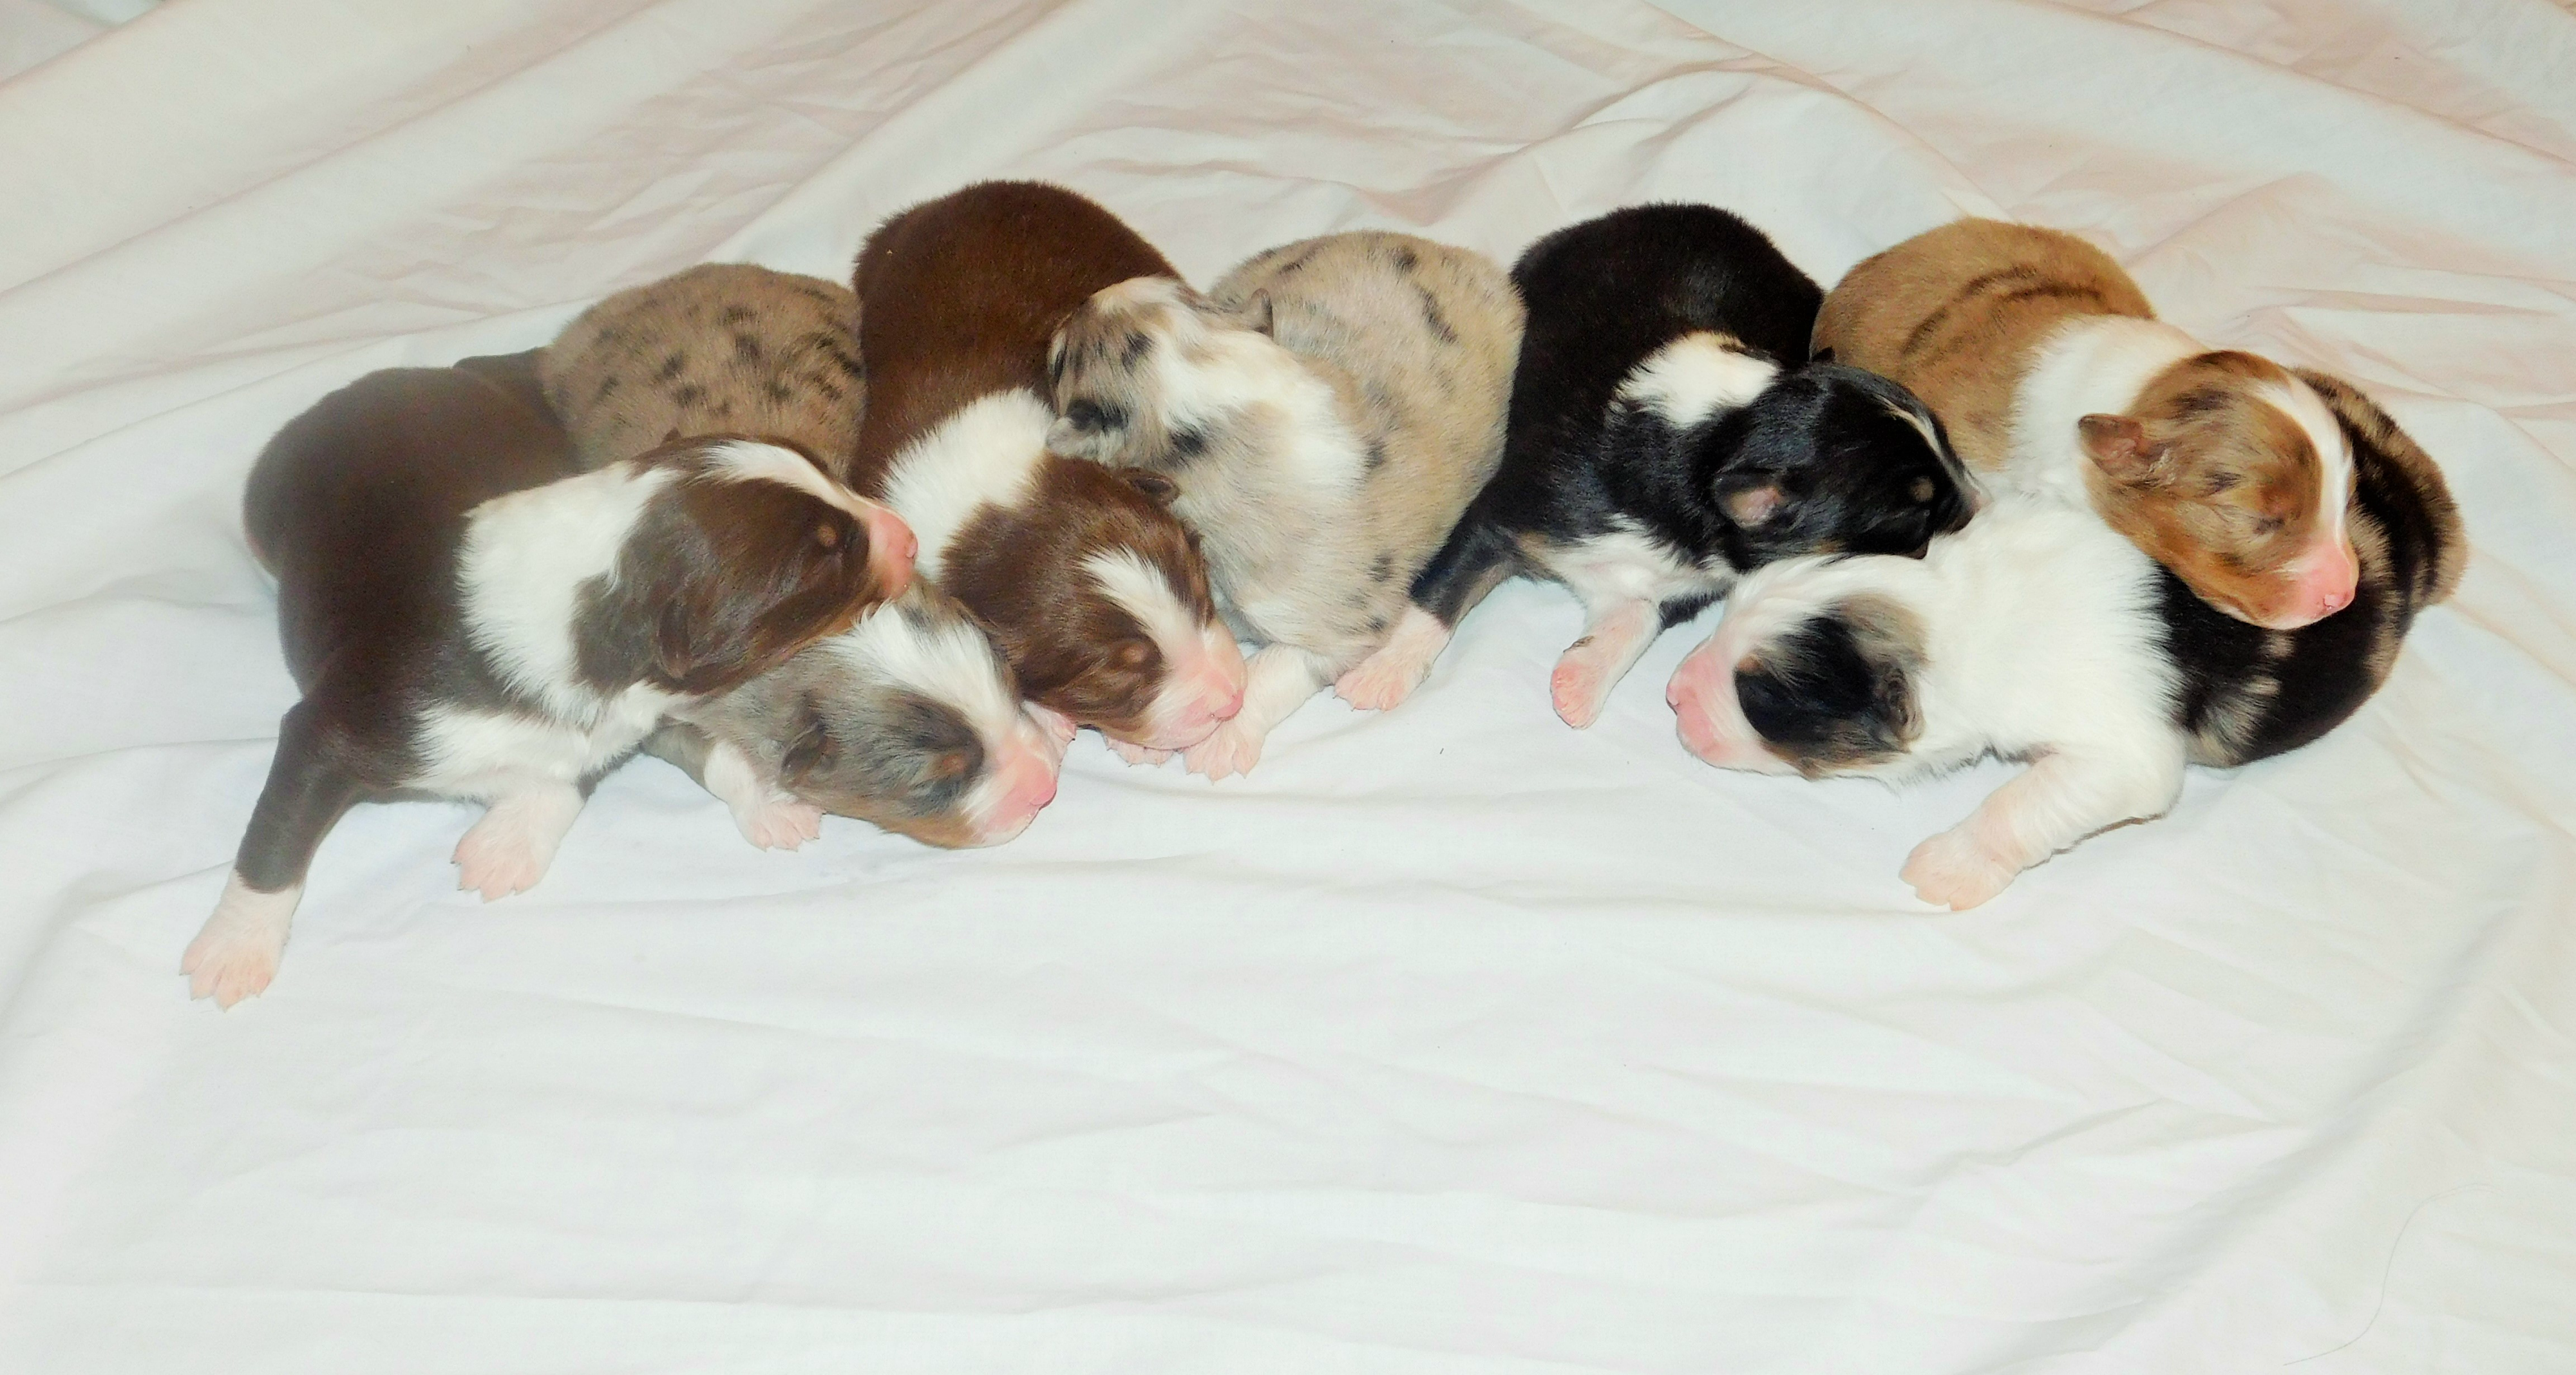 New Litter Born 10/28/15 Just in time for Christmas